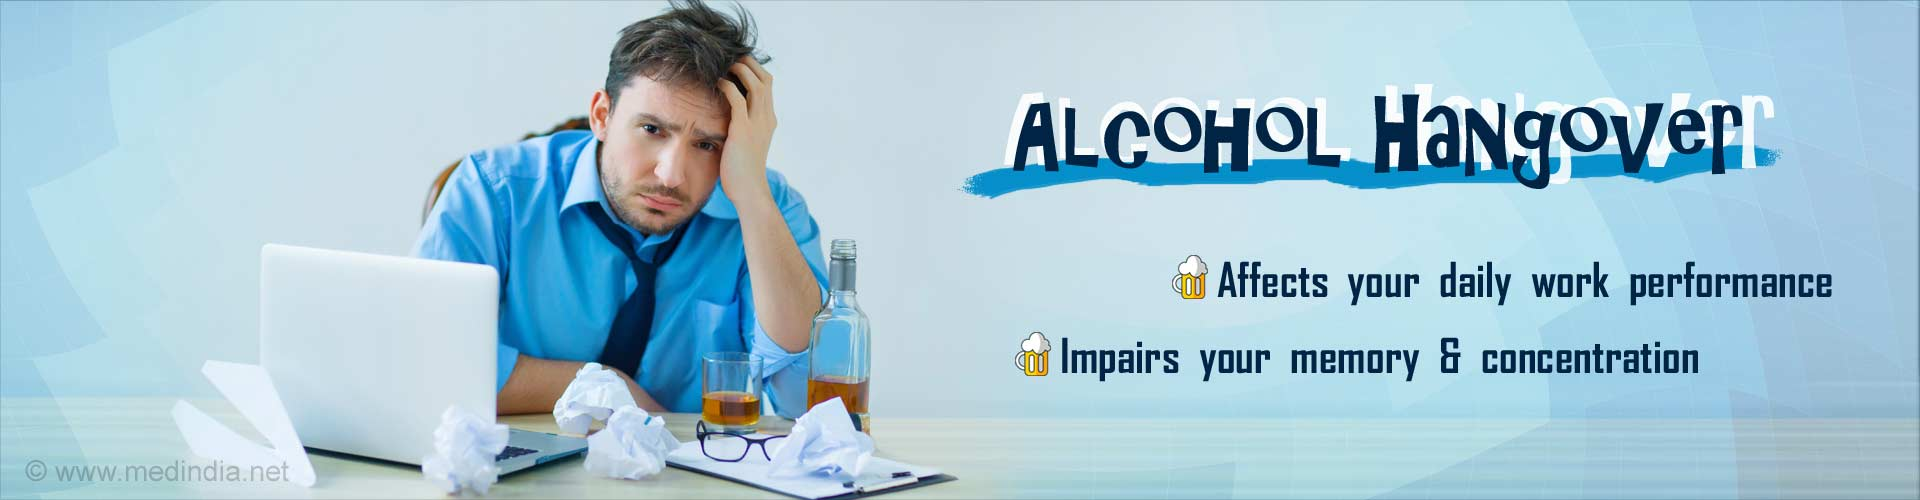 Alcohol hangover. Affects your daily work performance. Impairs your memory and concentration.